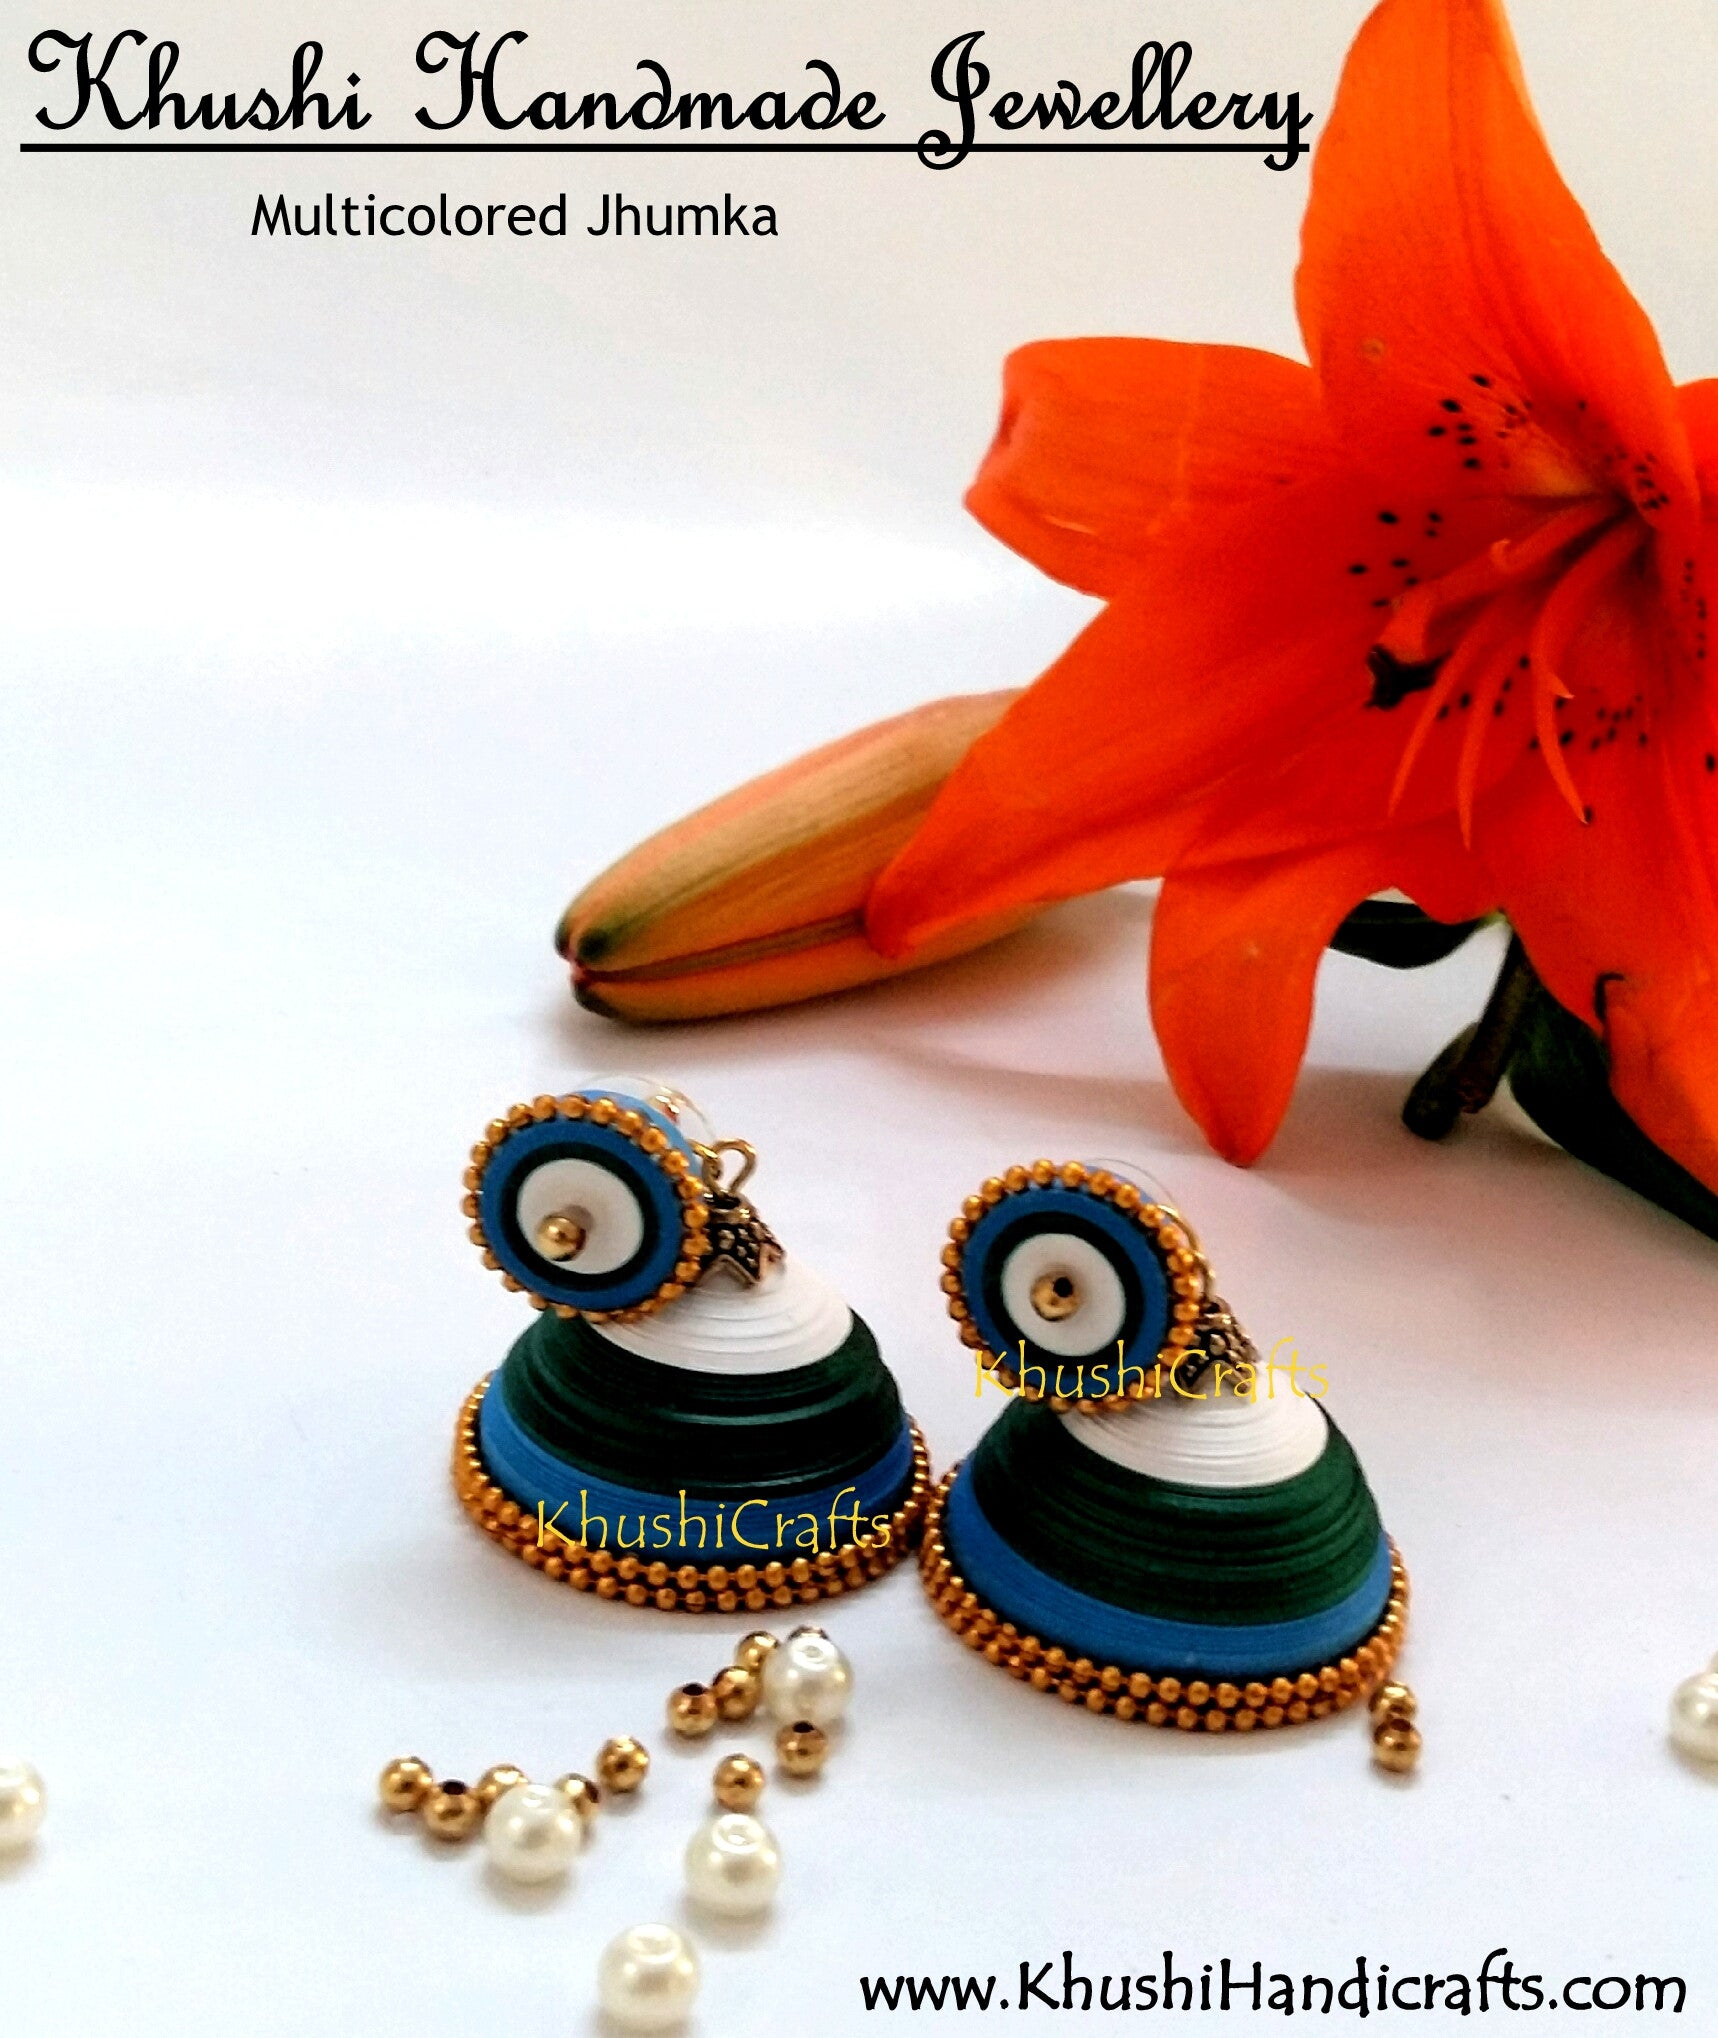 Quilled jhumka Earrings